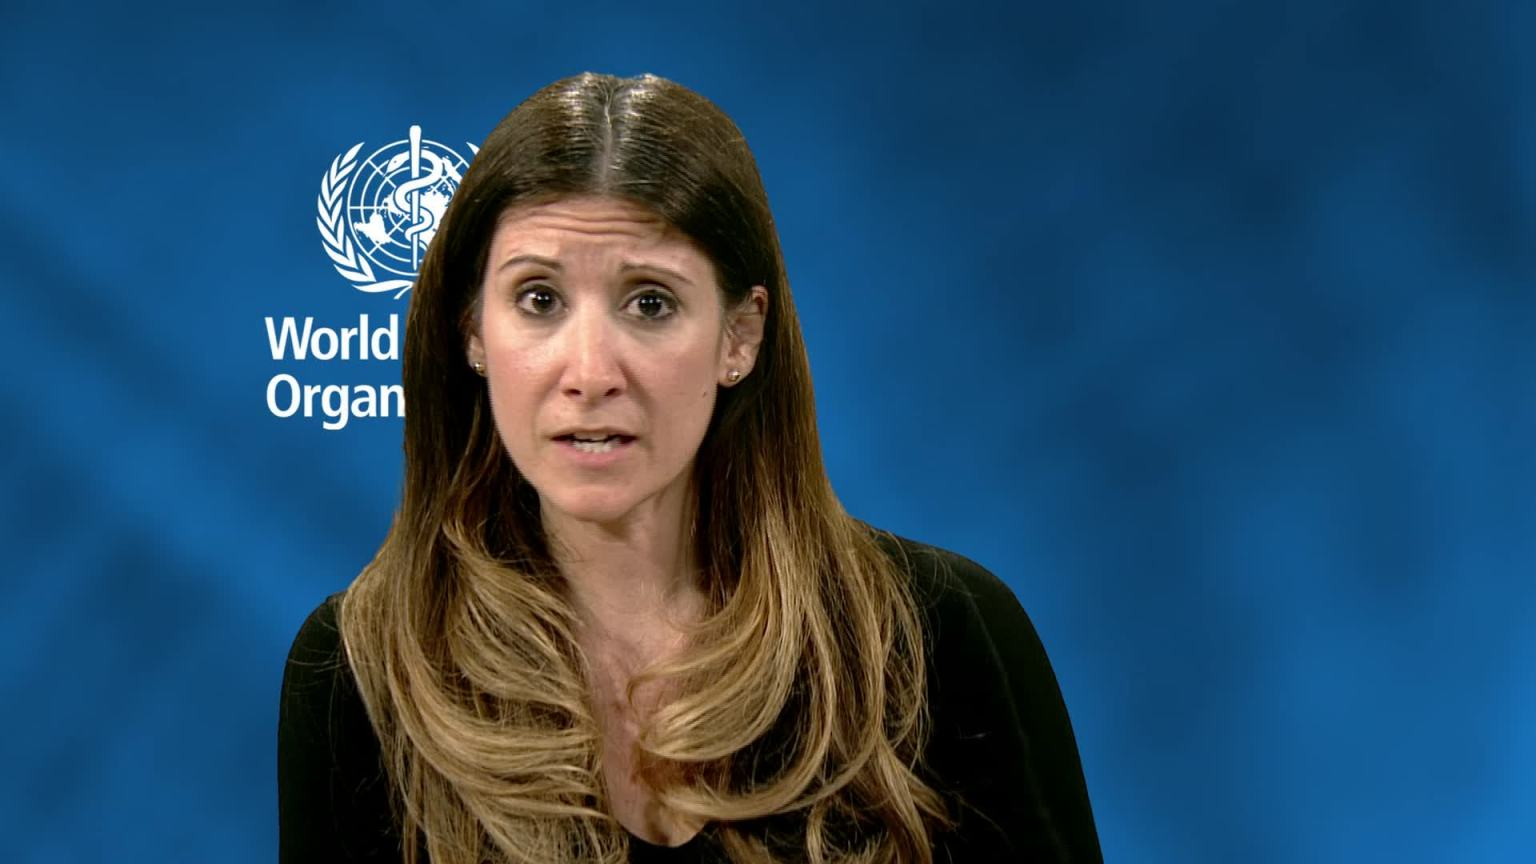 WHO Clarifies Comments on Asymptomatic Spread of Coronavirus: 'There's Much Unknown'